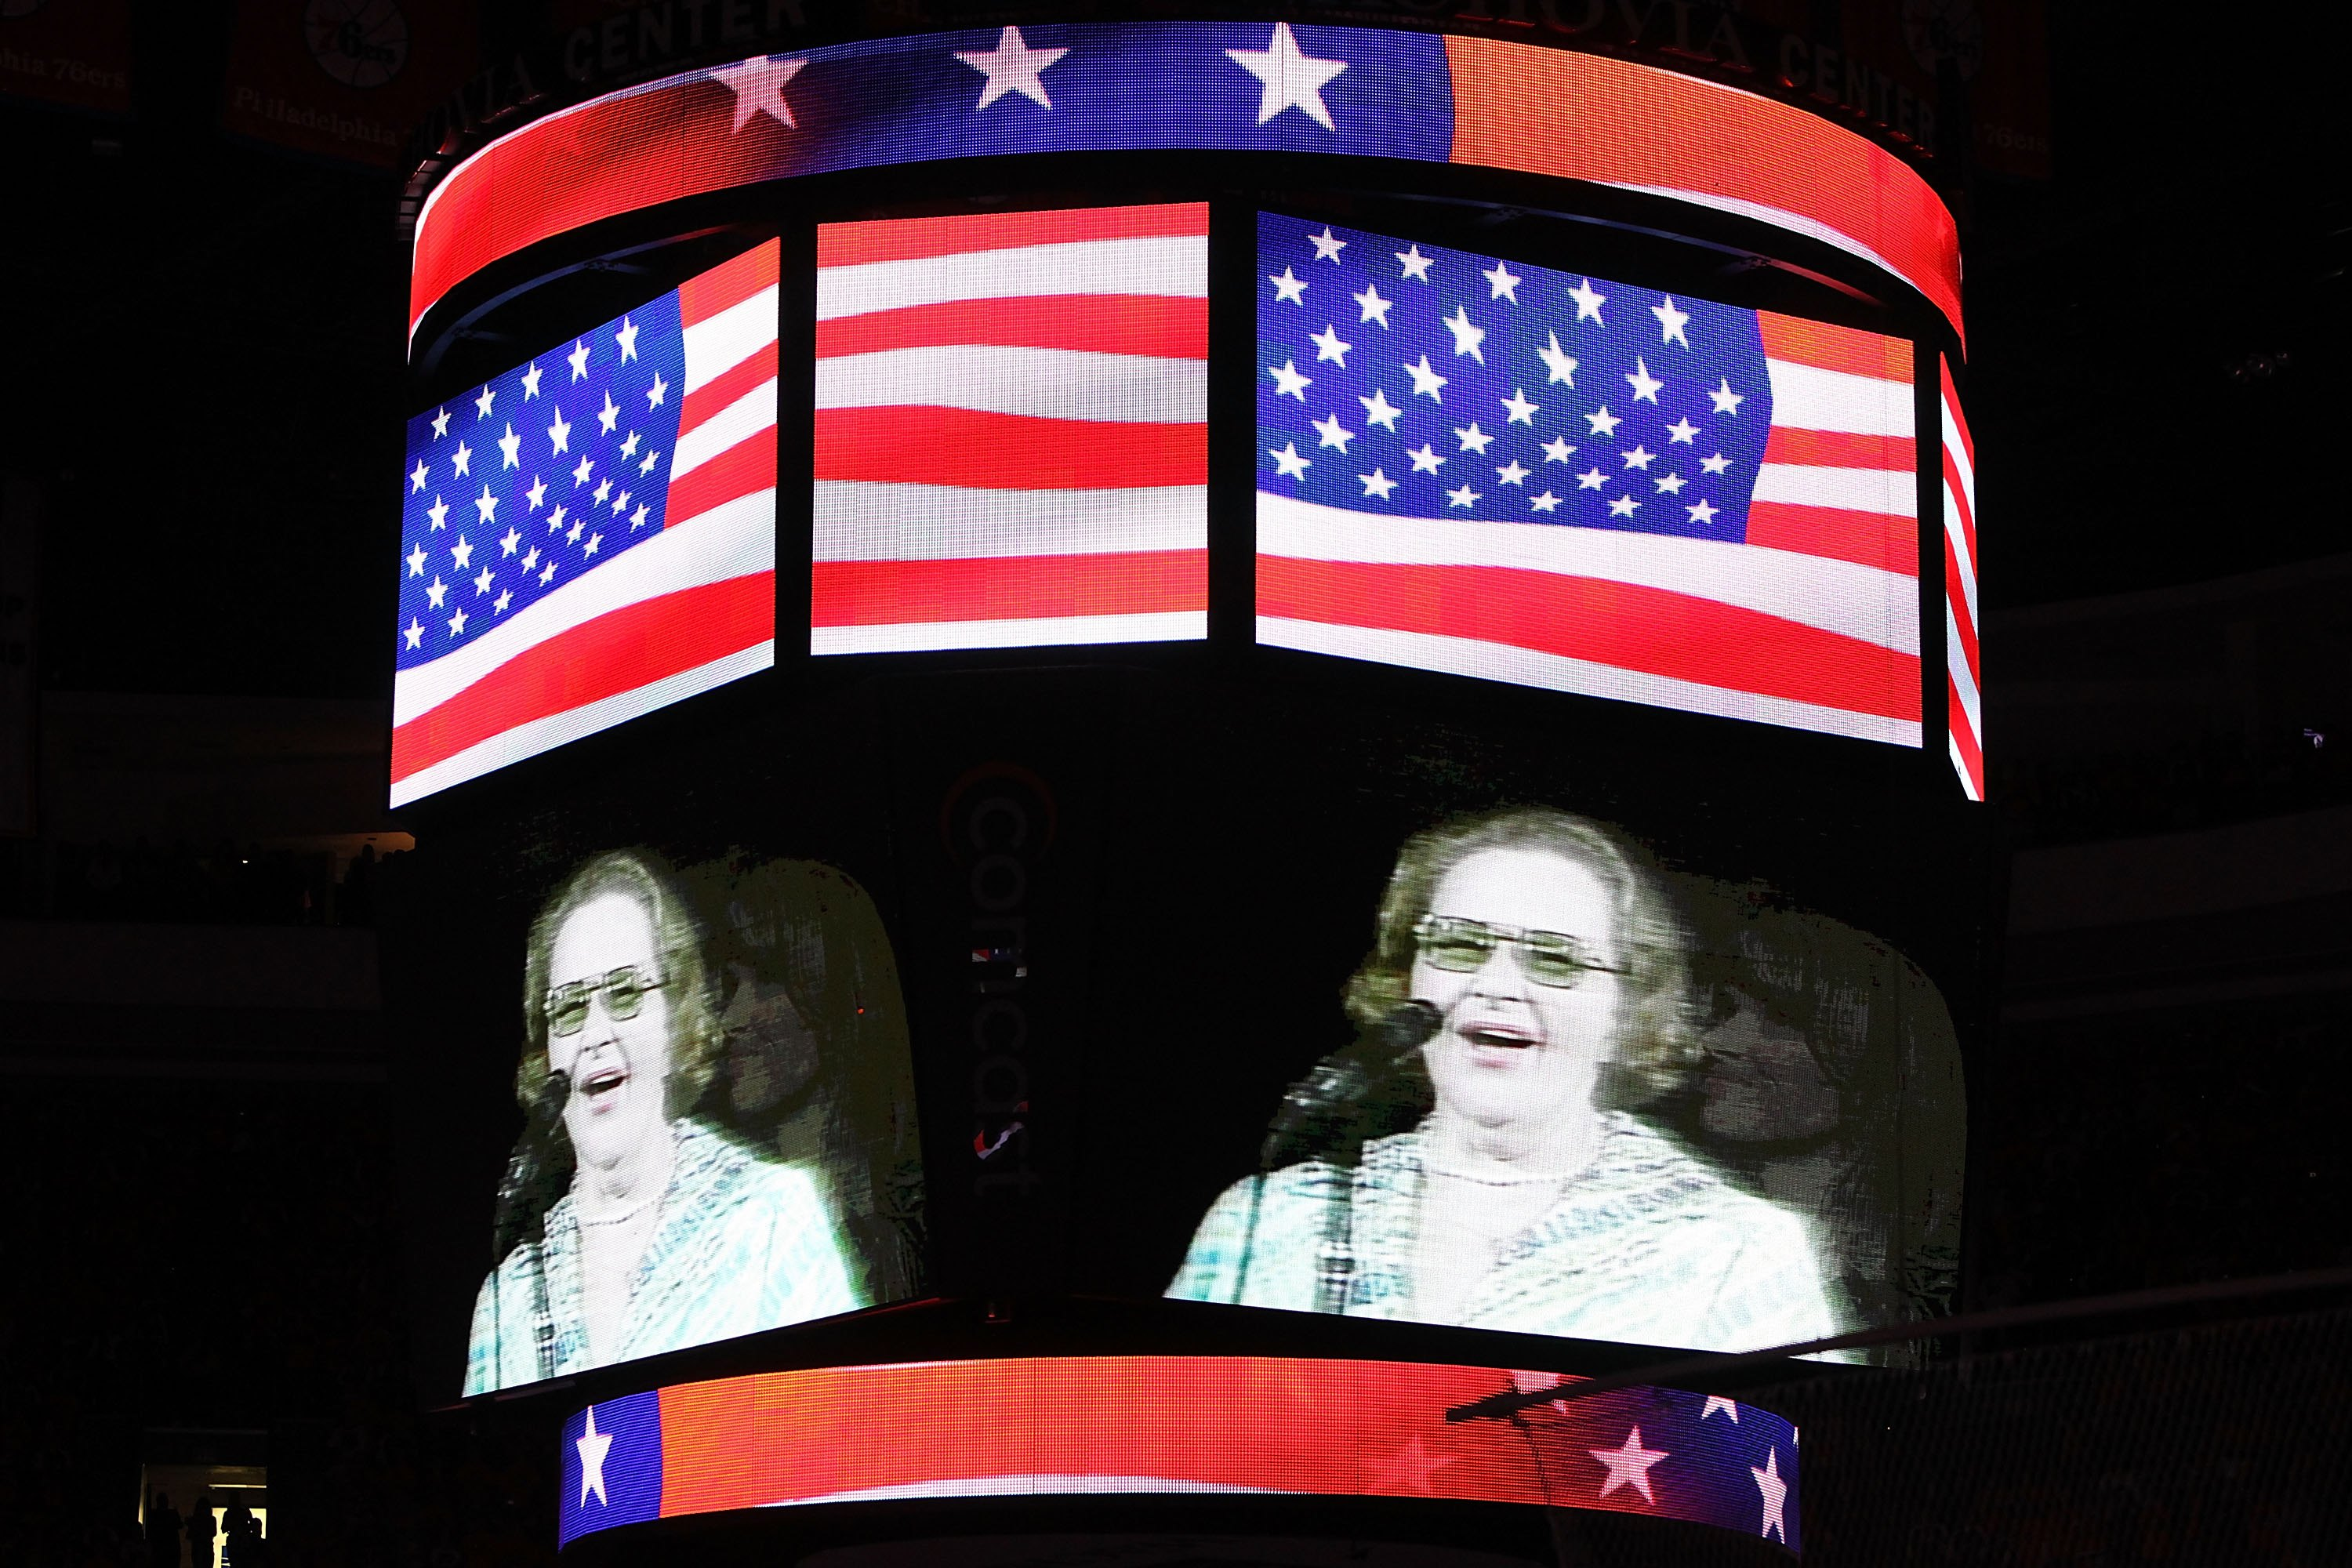 Singer Kate Smith is seen on the screen before Game Six of the 2010 NHL Stanley Cup Final between the Chicago Blackhawks and the Philadelphia Flyers at the Wachovia Center on June 9, 2010 in Philadelphia, Pennsylvania. (Photo by Andre Ringuette/Getty Images)